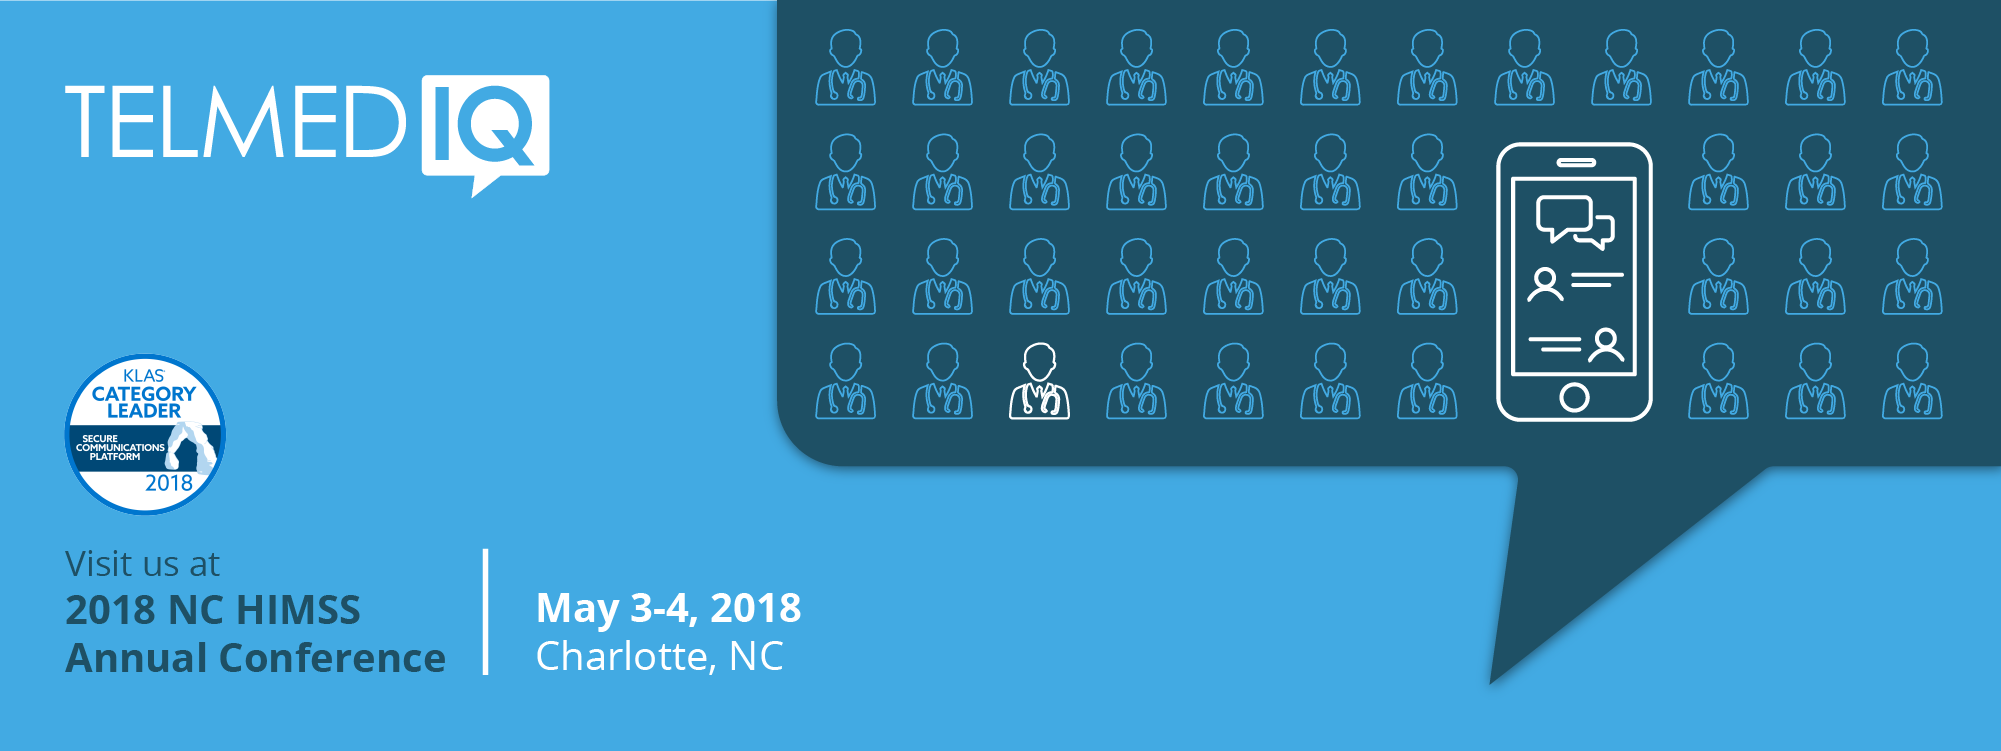 2018 NC HIMSS Annual Conference